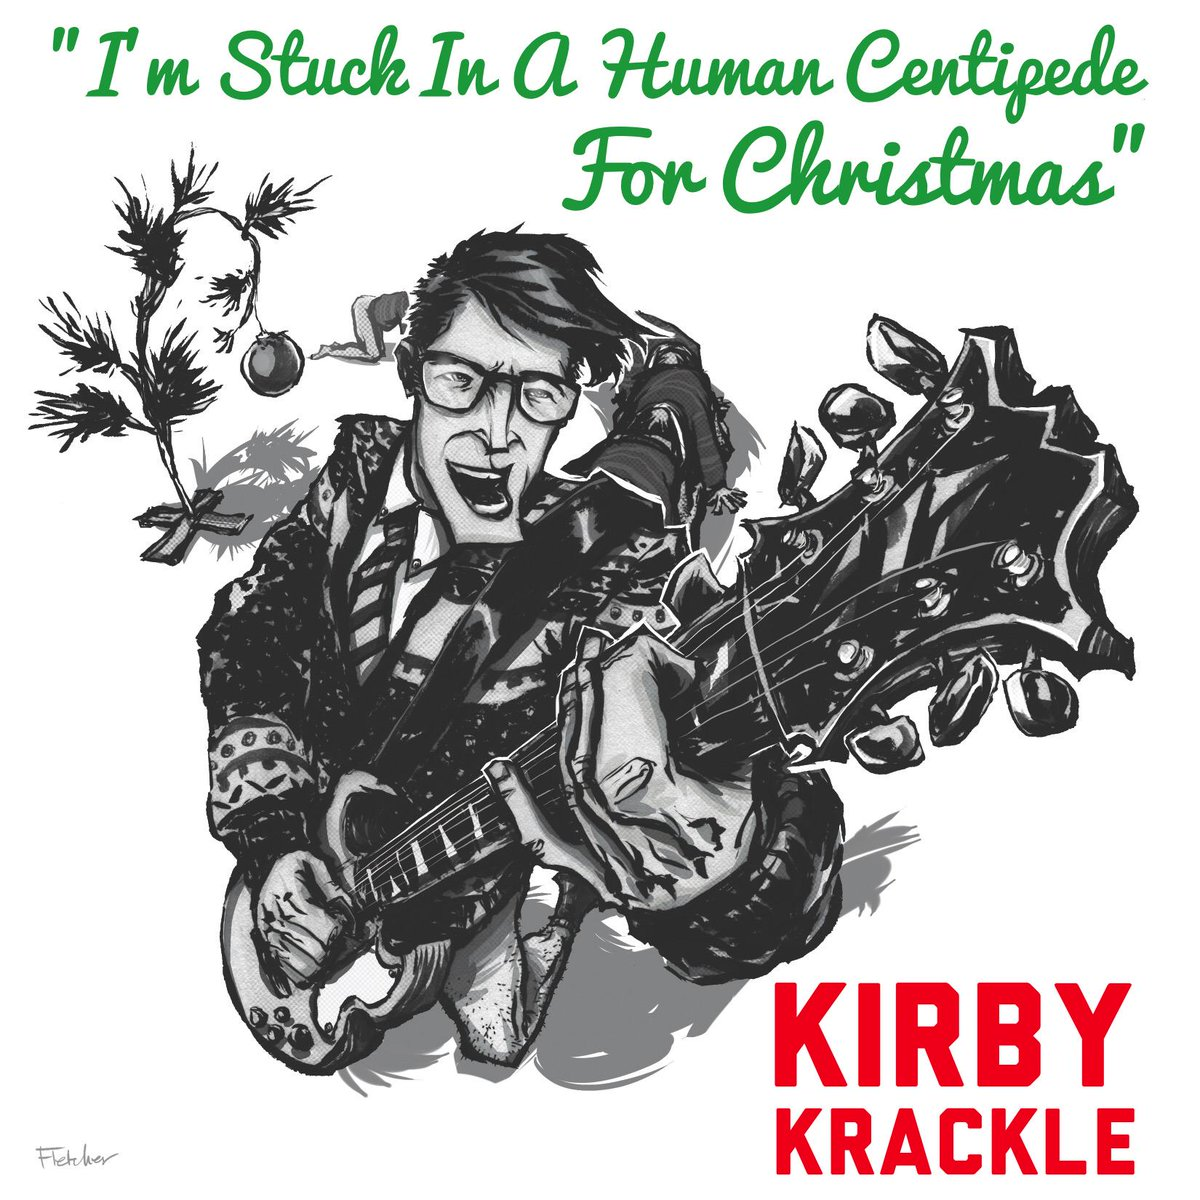 """2014 Holiday Single is here! """"I'm Stuck In A Human Centipede For Christmas"""". Free download at http://t.co/fIEDYUgAXs http://t.co/tVs5c0KpFz"""